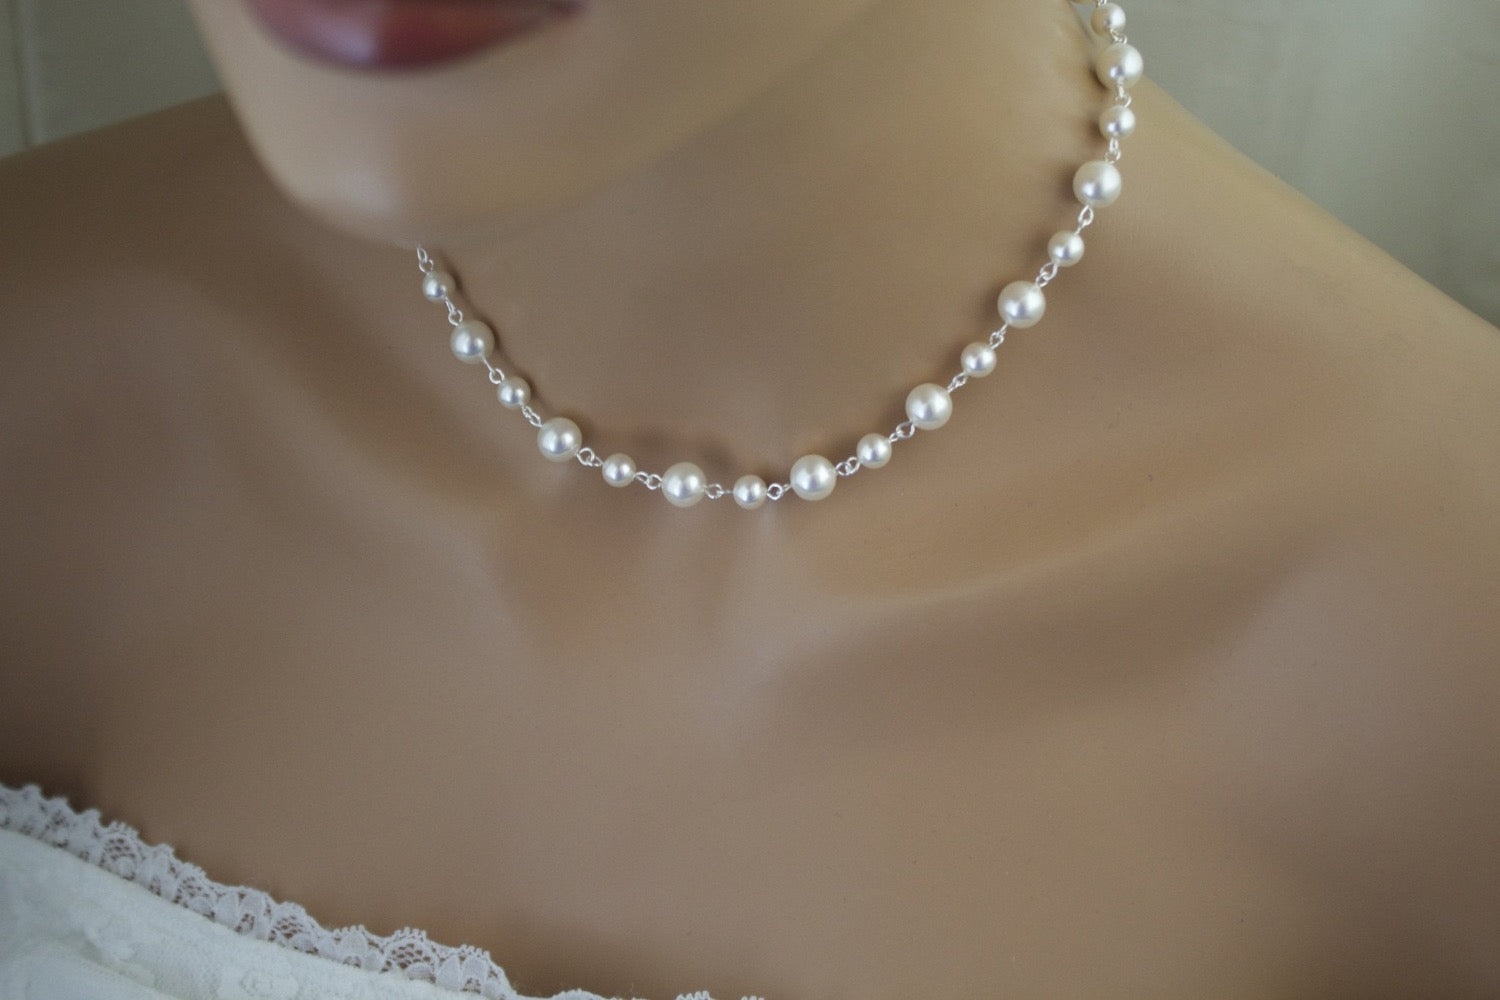 Wedding pearl necklace bridal jewelry Canada shop online - Clairesbridal - 4